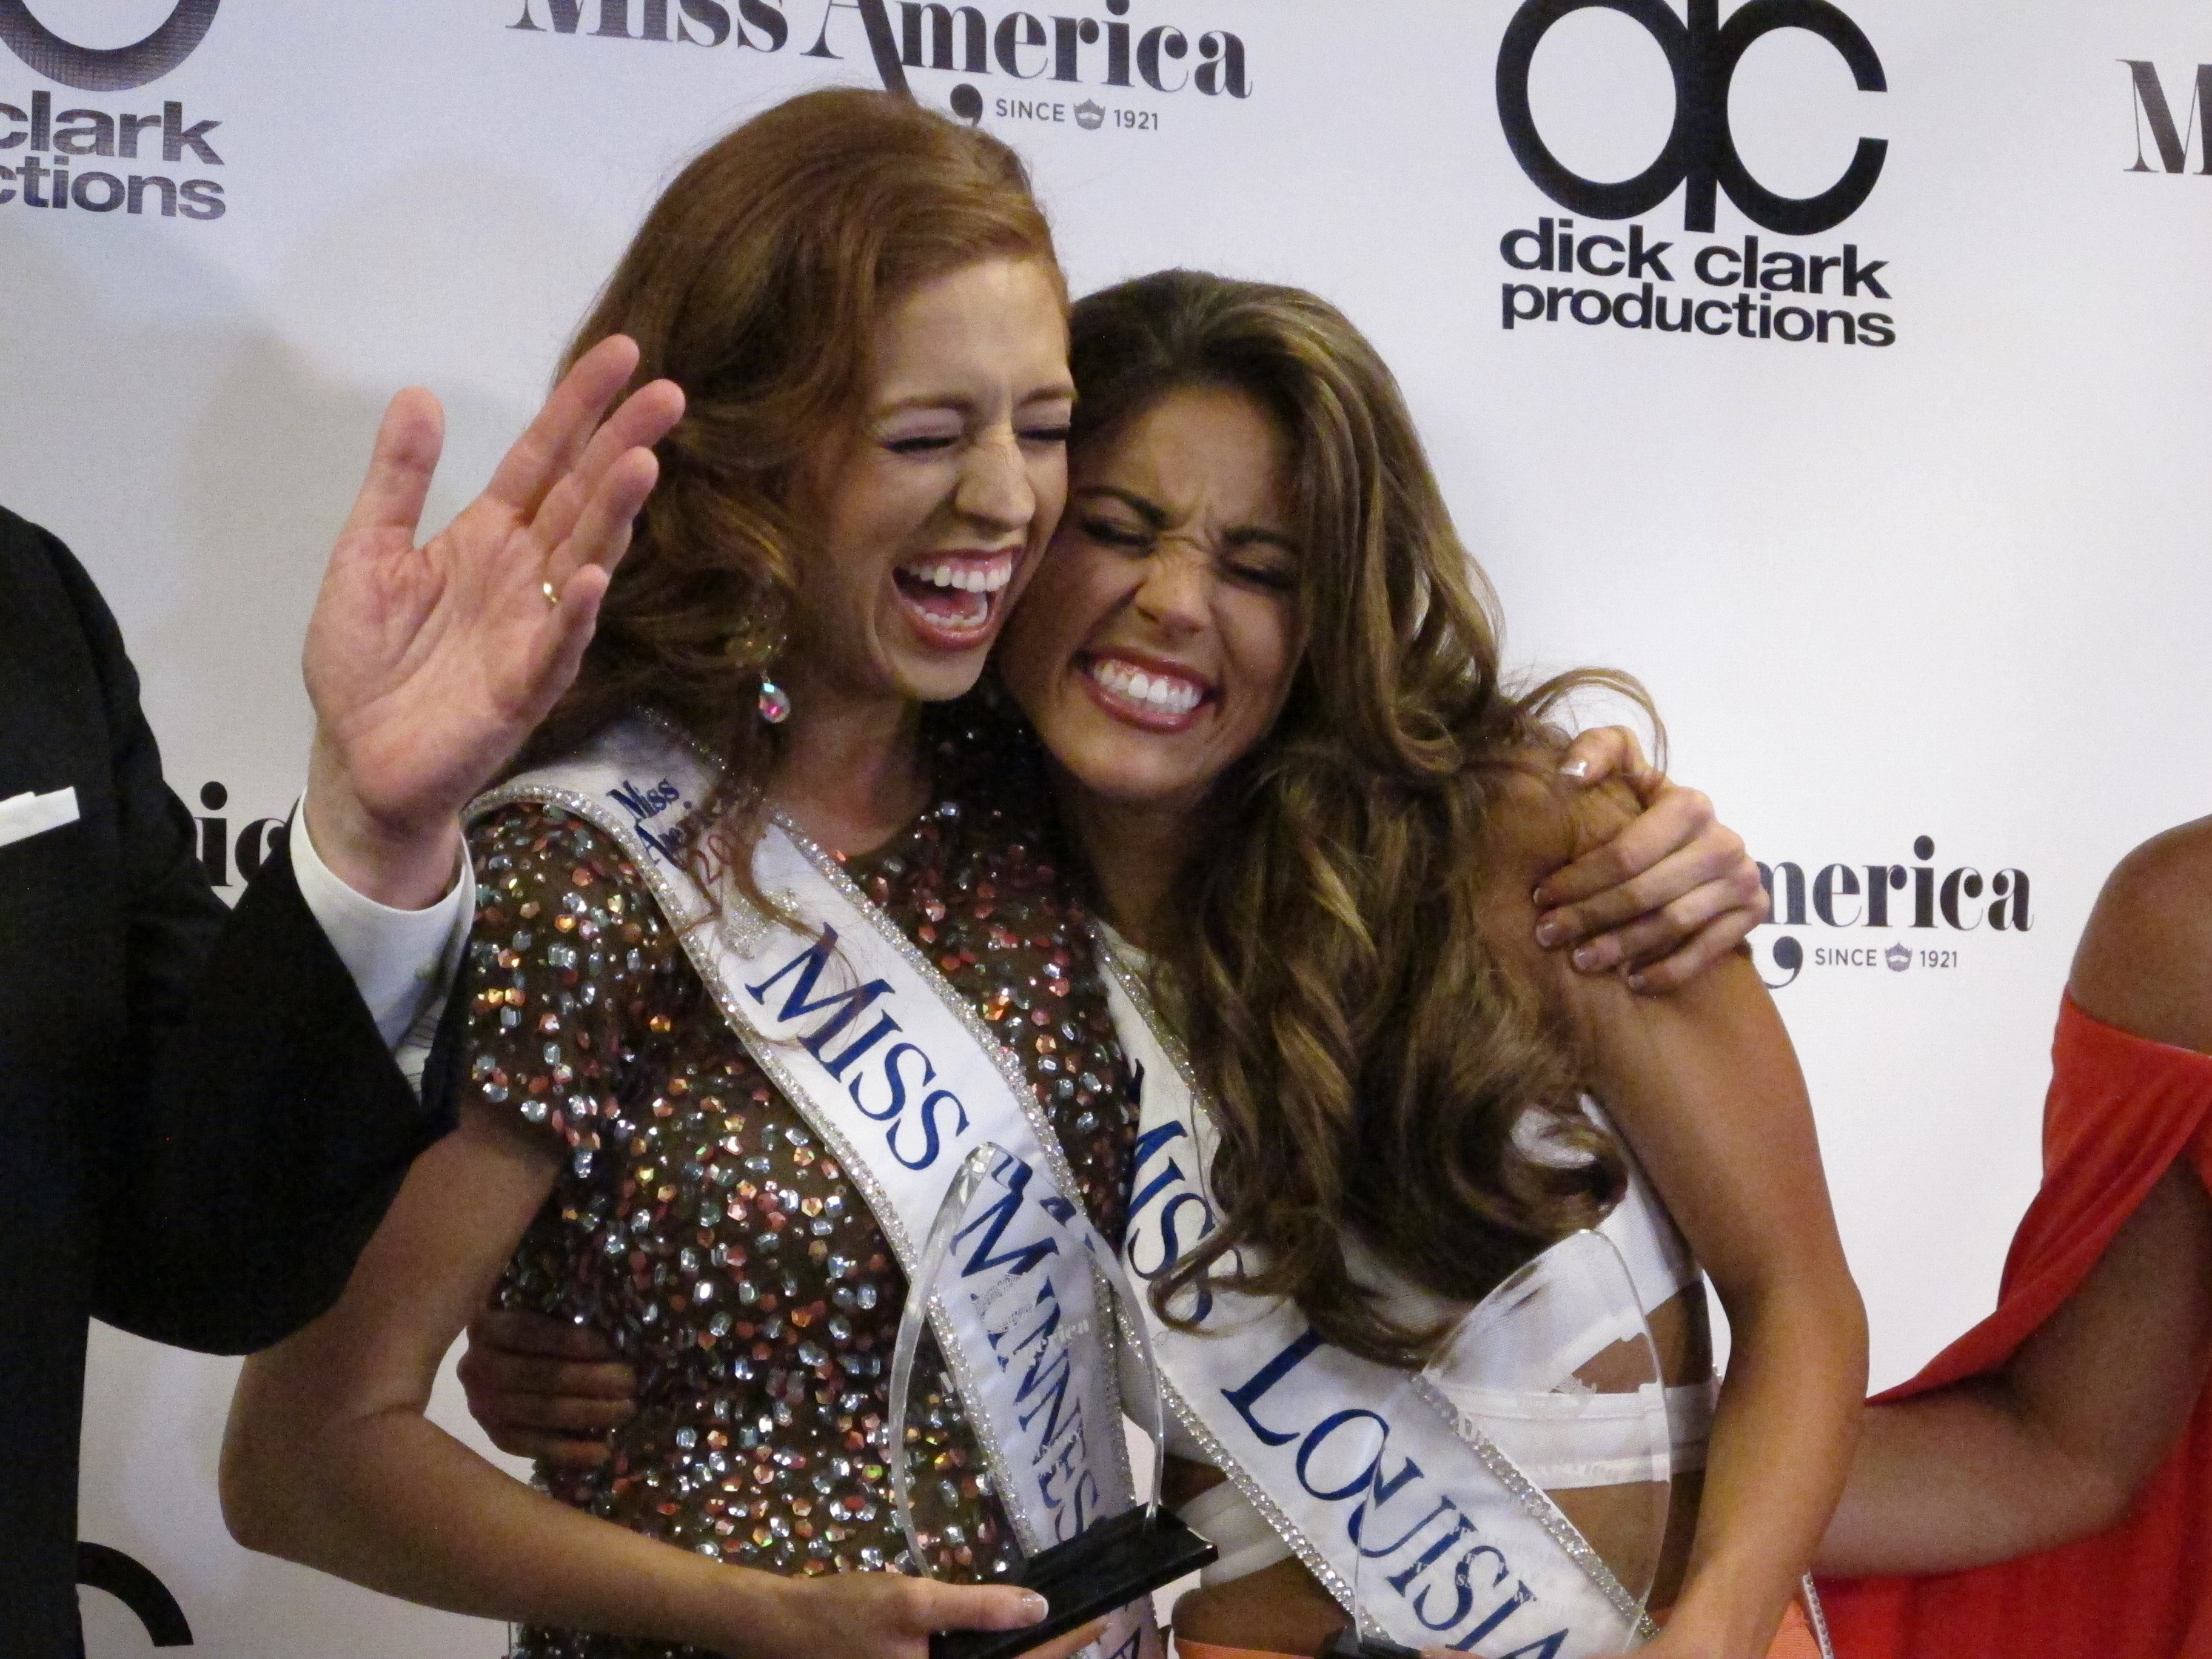 "Miss Minnesota Brianna Drevlow, left, and Miss Louisiana Laryssa Bonacquisti, right, meet reporters after winning preliminary competitions Thursday night Sept. 7, 2017 in the Miss America competition in Atlantic City, N.J. Drevlow won for playing a rendition of ""Rhapsody In Blue"" on the piano, and Bonacquisti won the swimsuit competition. (AP Photo/Wayne Parry)"